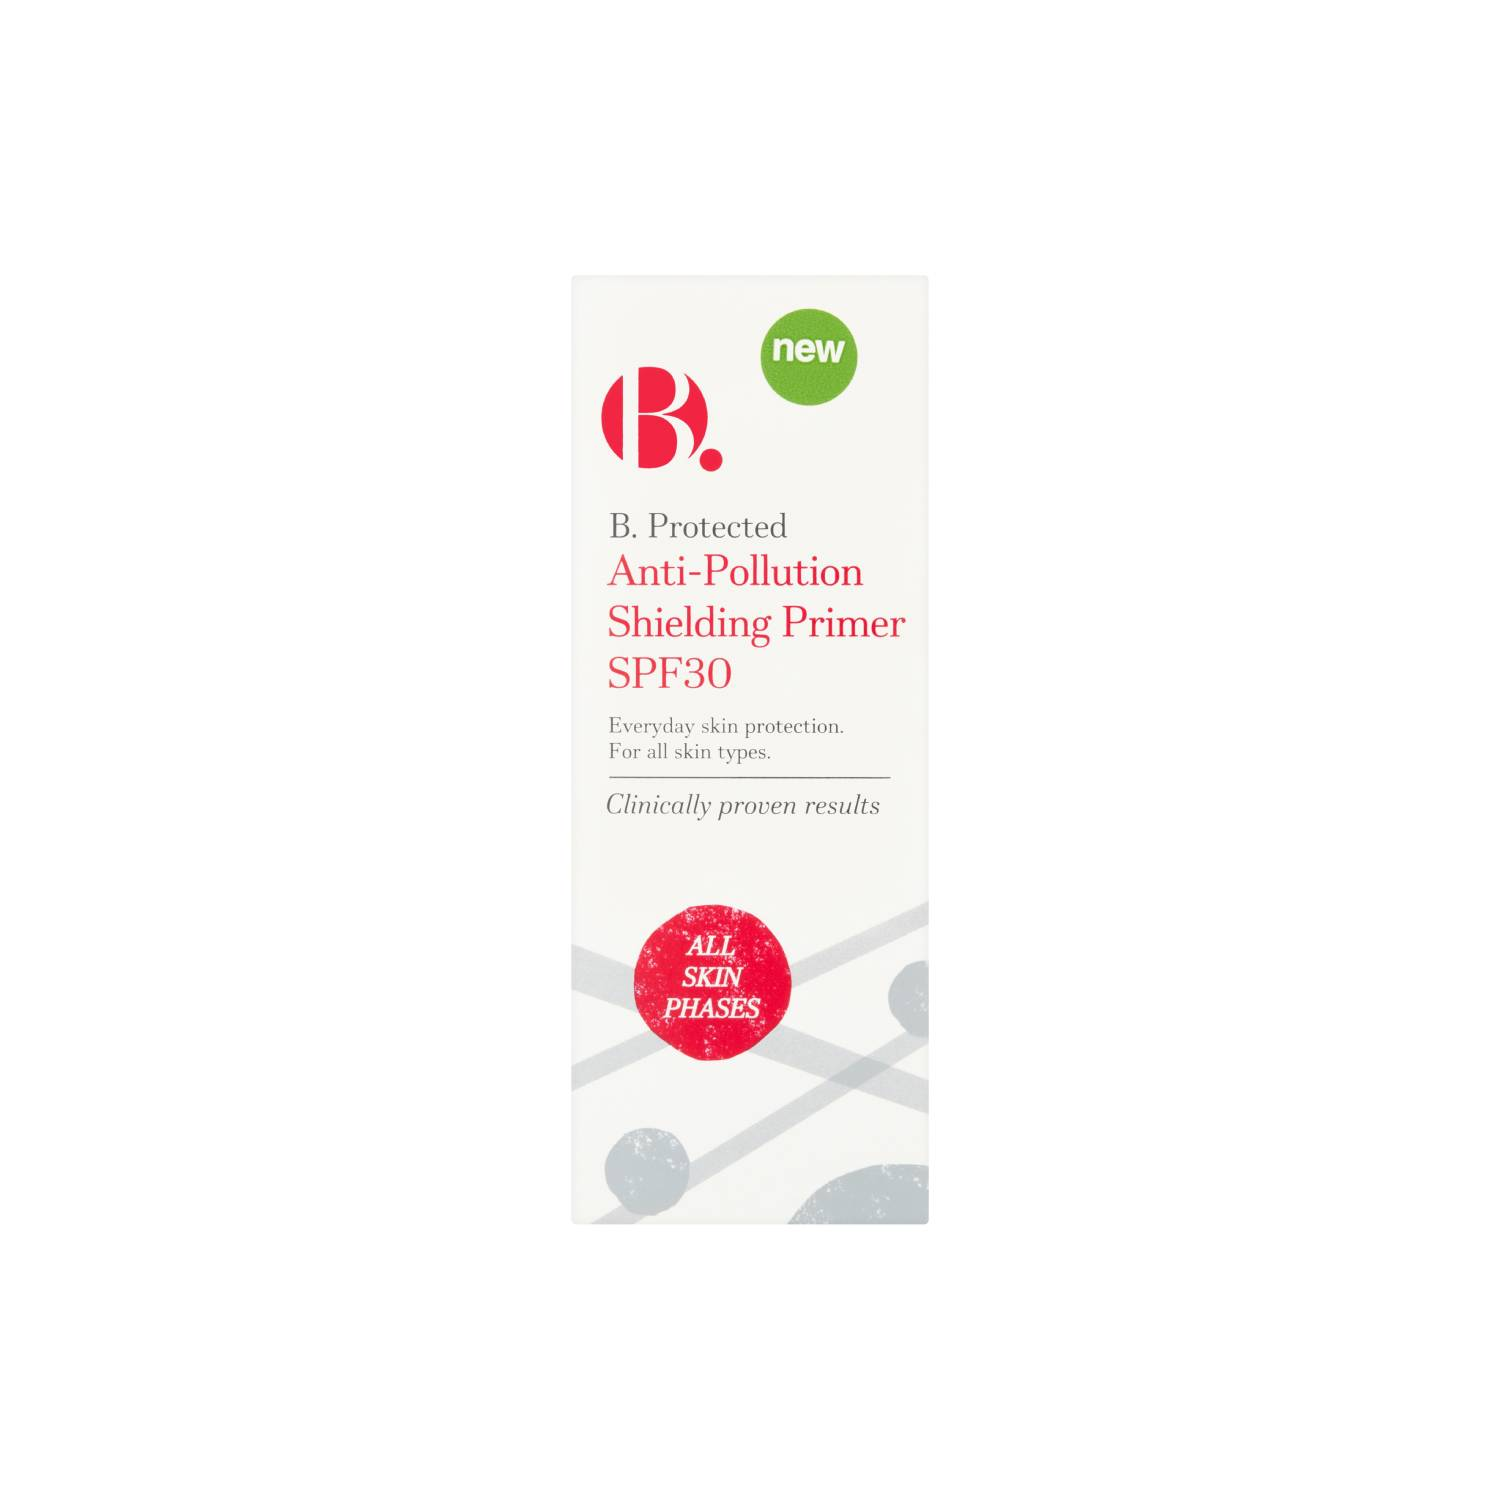 B. Protected Anti-Pollution Shielding Primer SPF30 - This primer is fantastic at protecting from the sun and pollution whilst creating a smooth canvas for makeup. It has a very light consistency but goes a long way, so you only need a little bit for your face and neck. £12.99